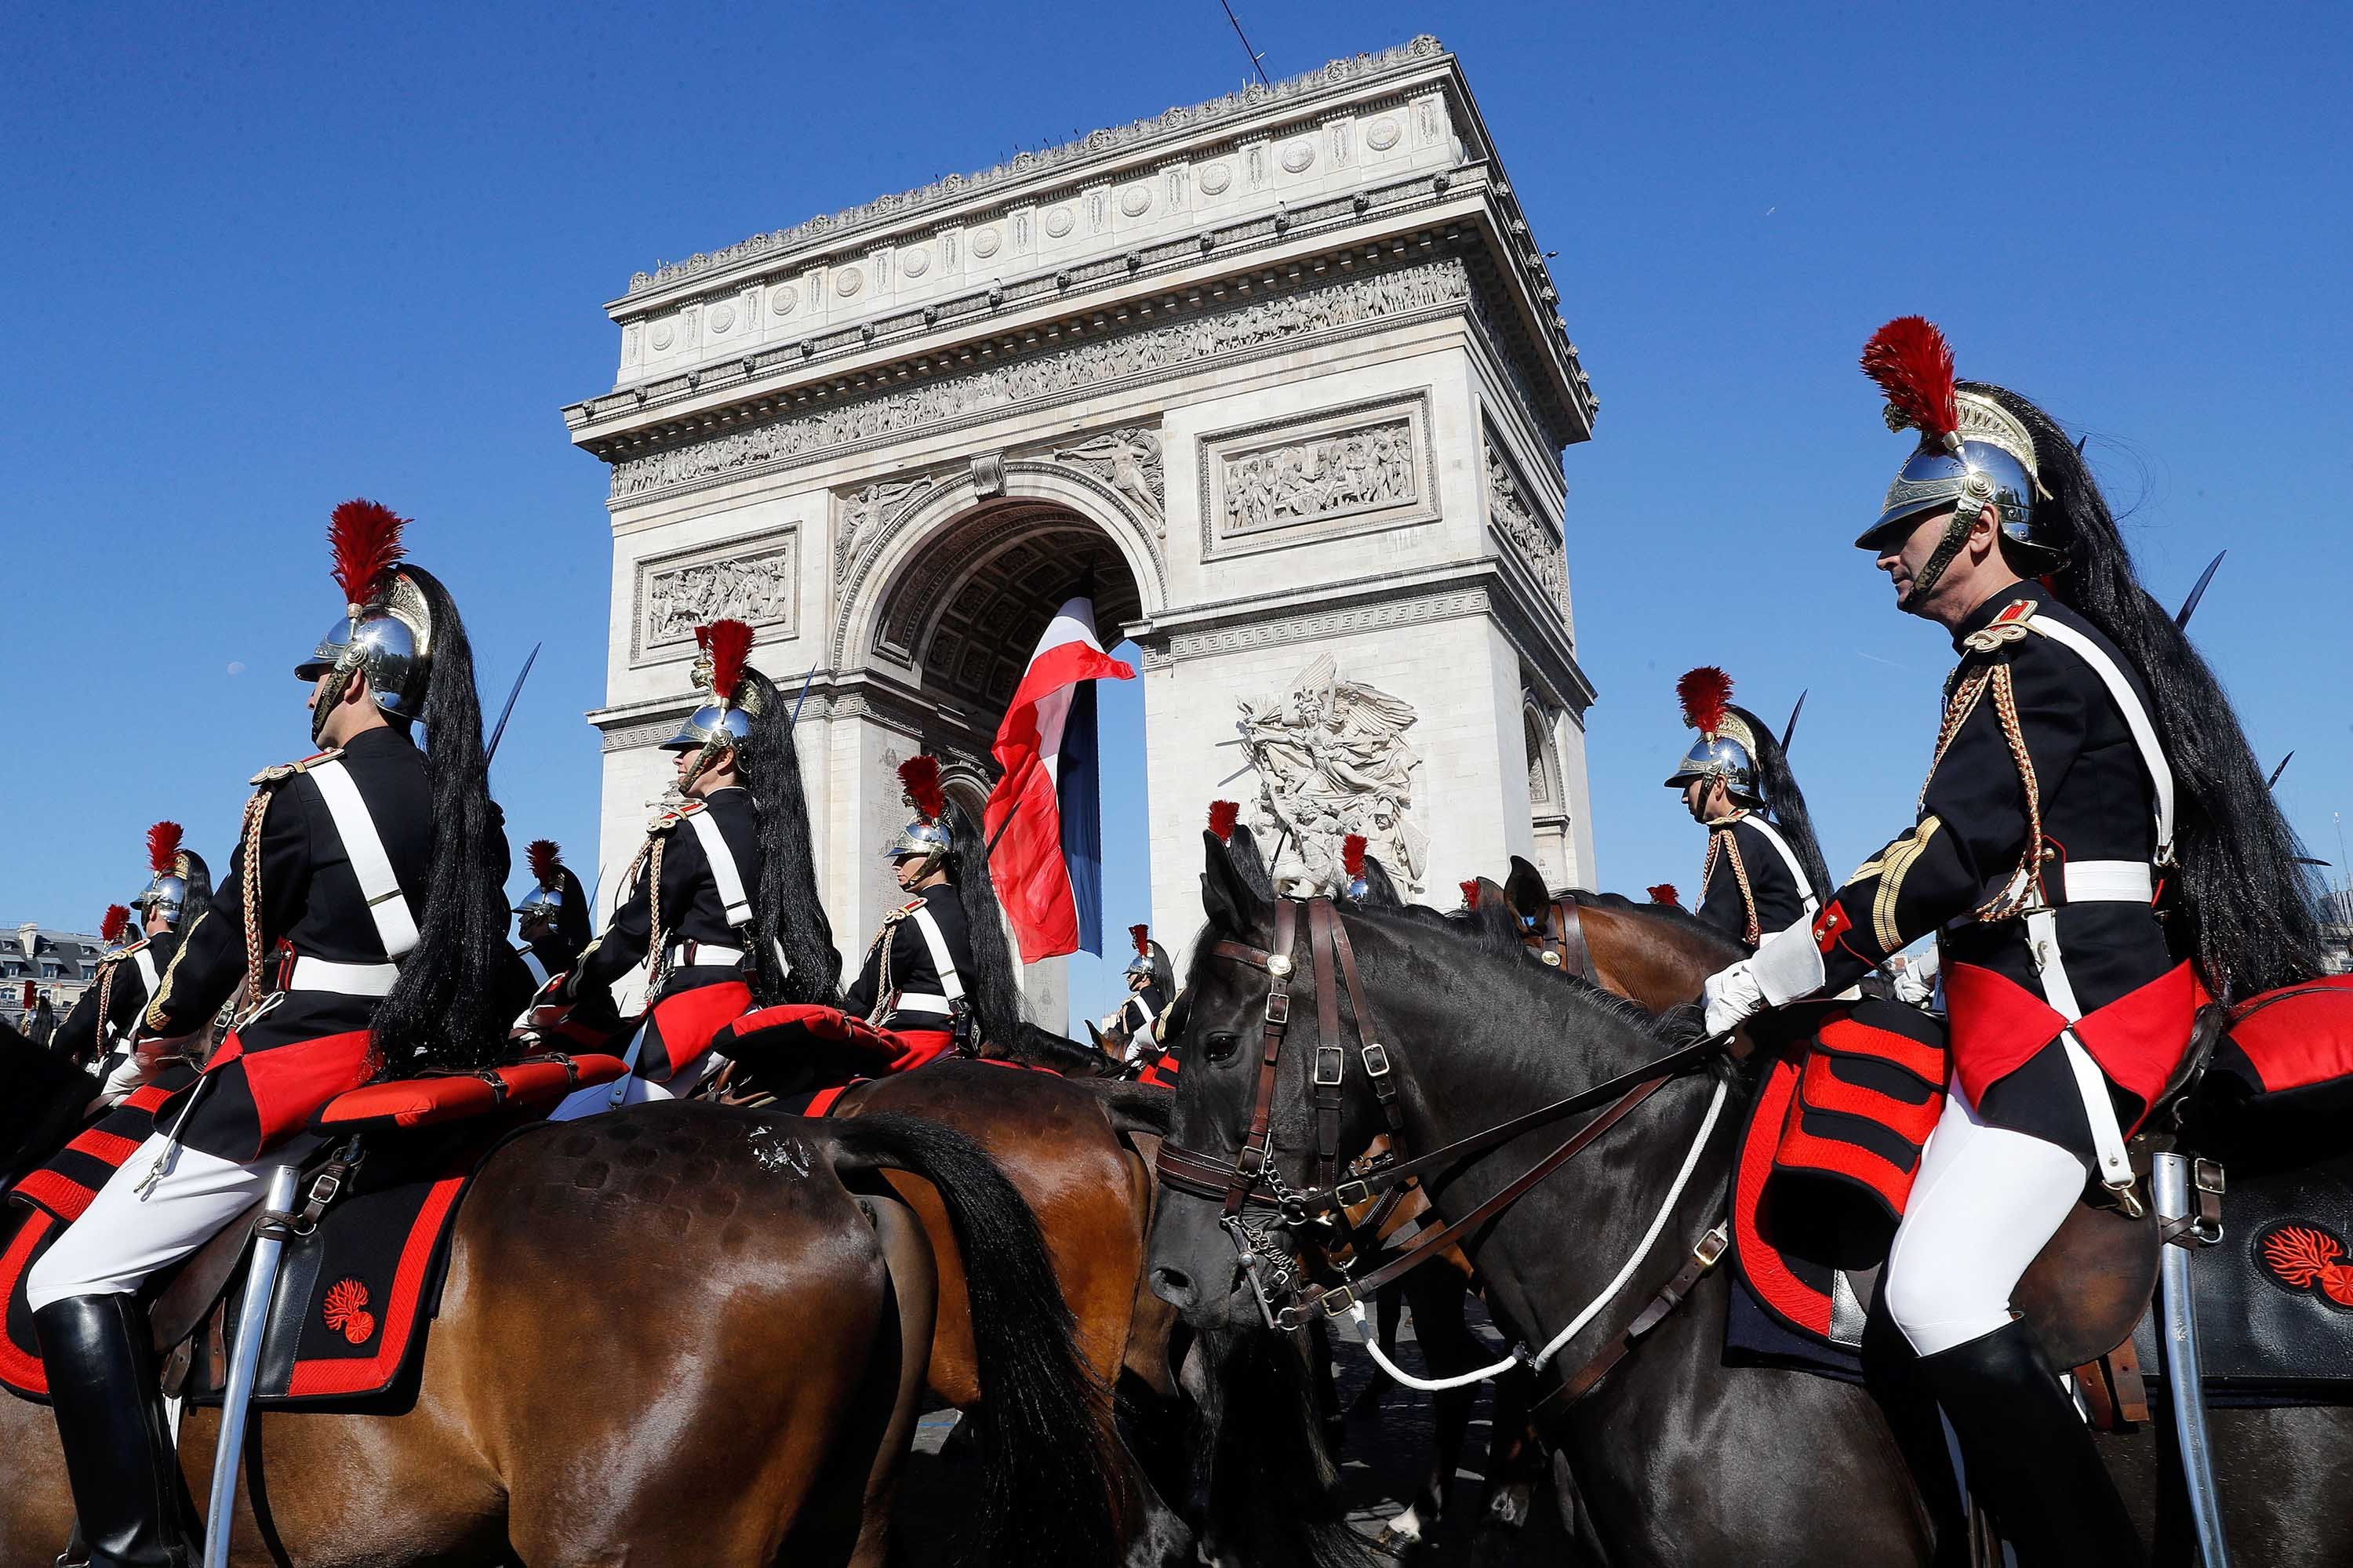 Bastille Day inspired centuries of civil disobedience in France. Here's why